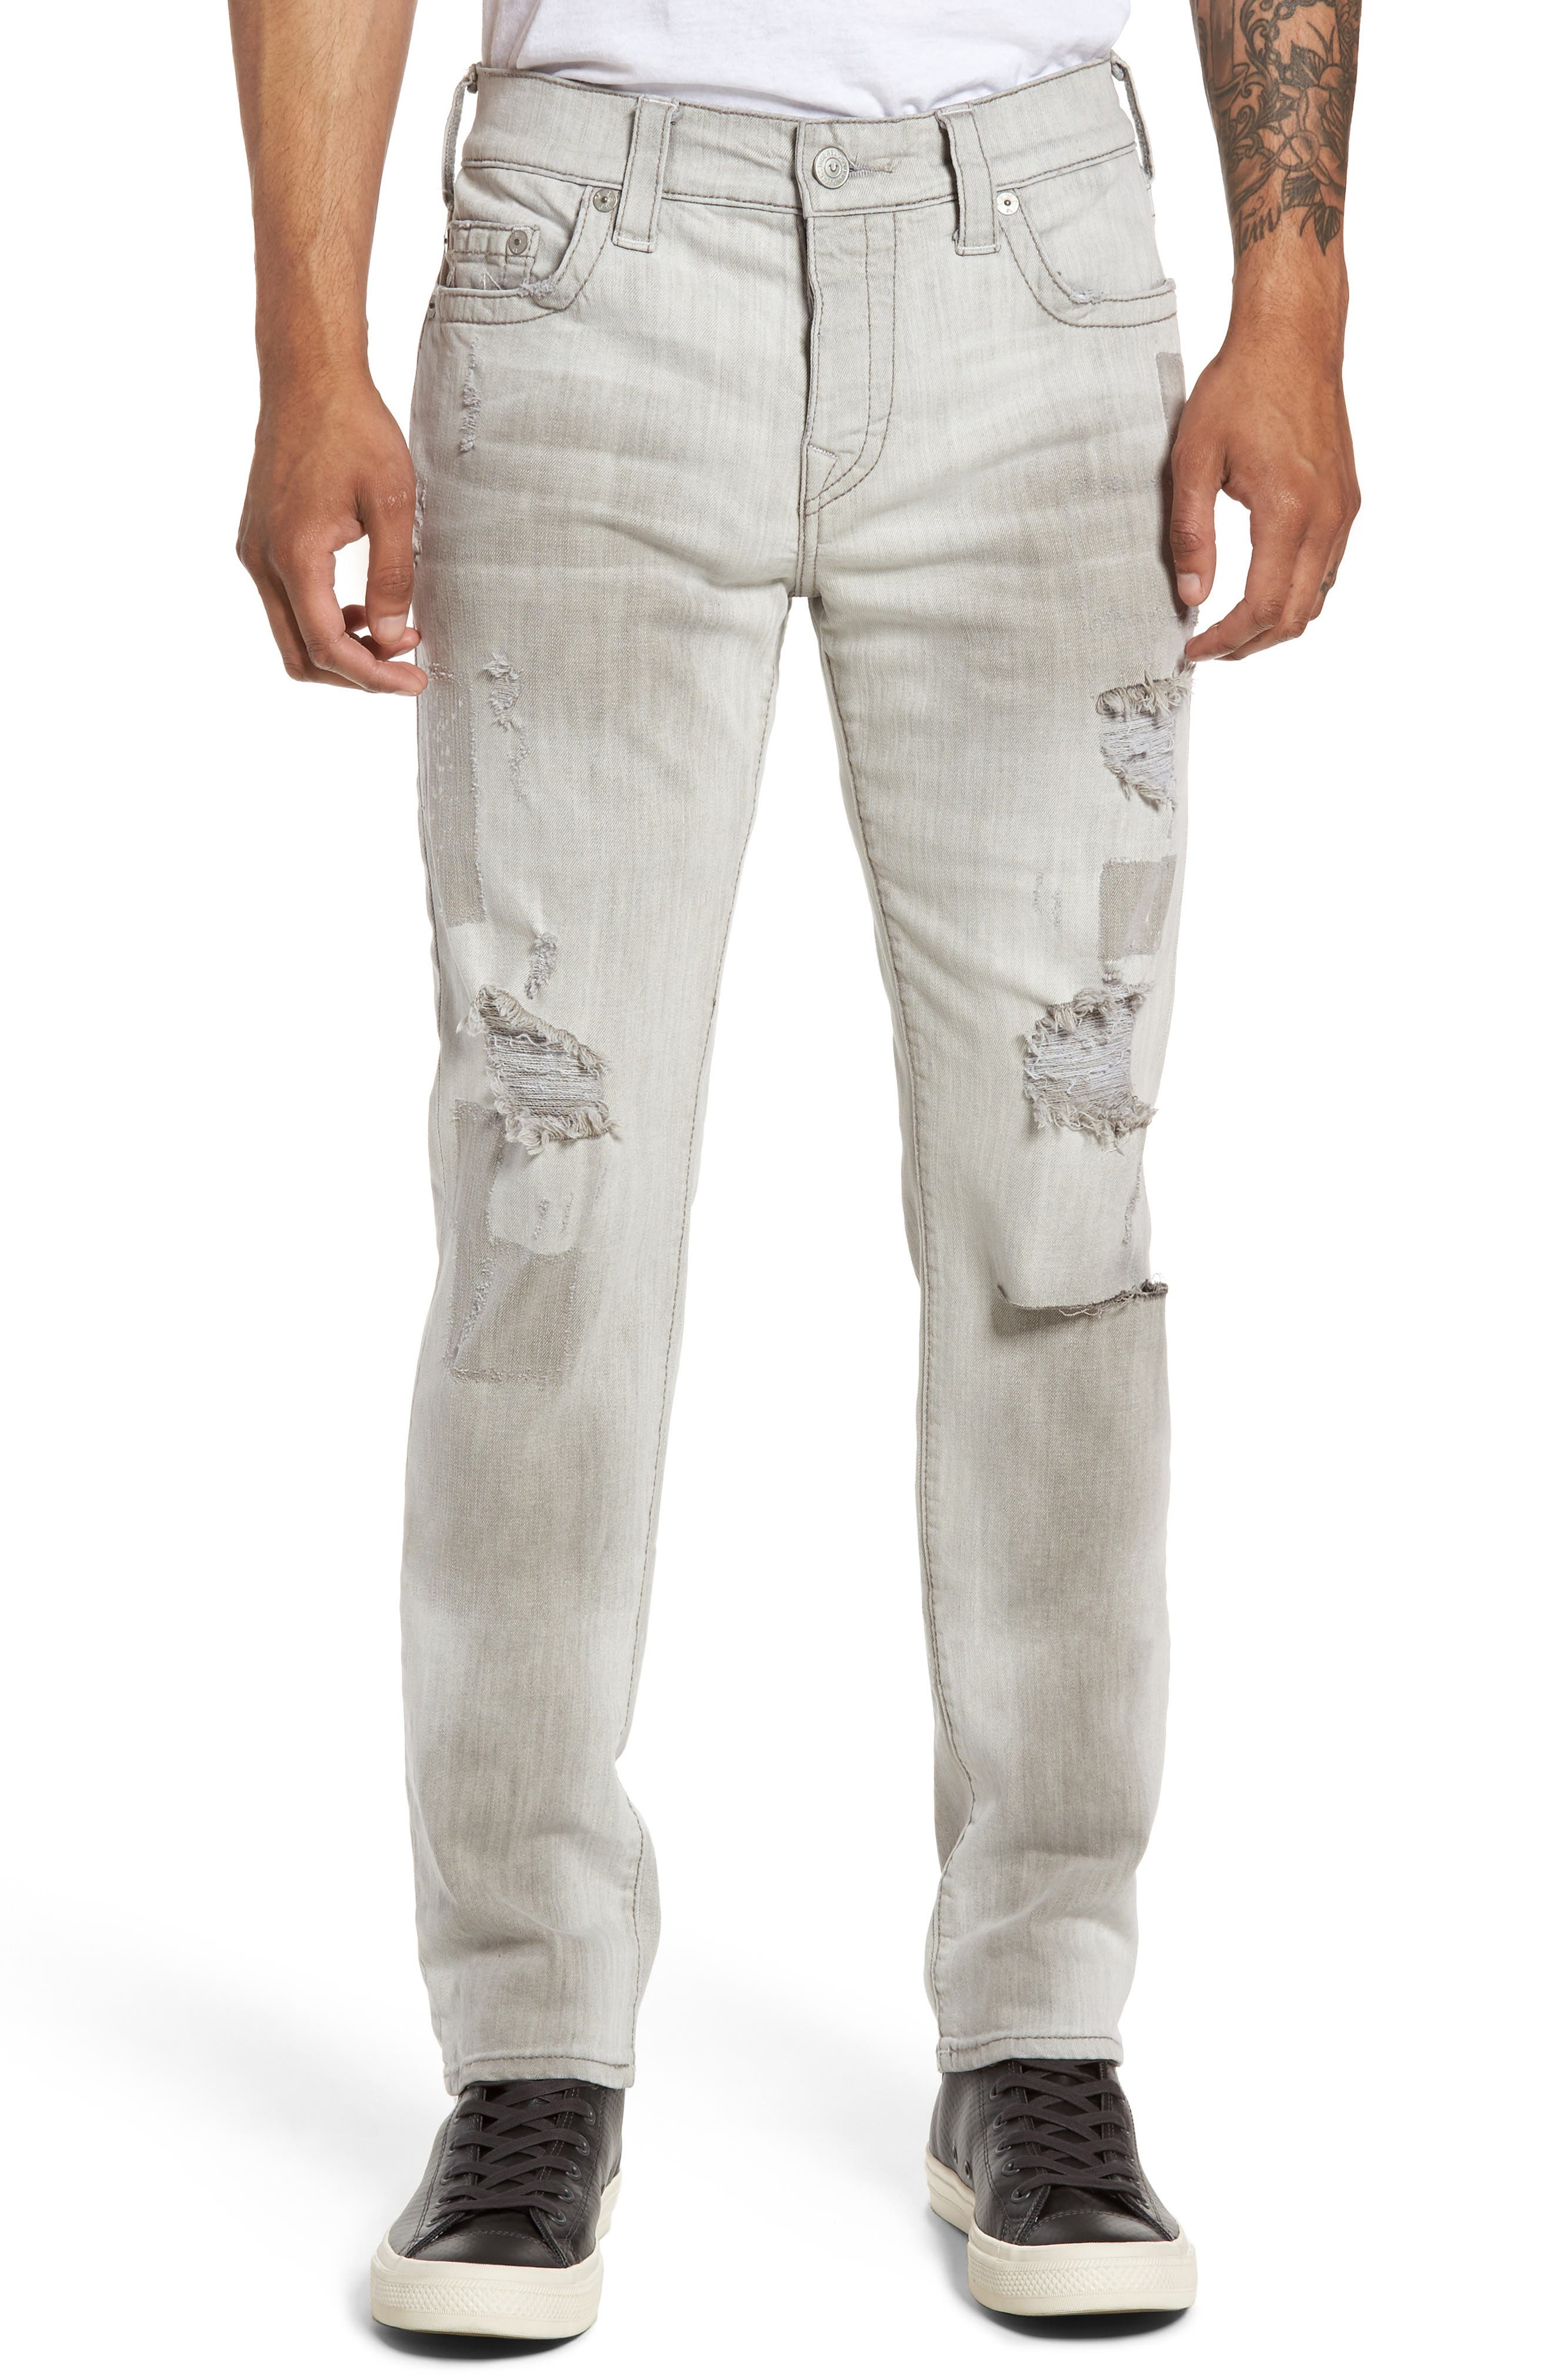 Rocco Skinny Fit Jeans,                         Main,                         color, Boardwalk Shadow